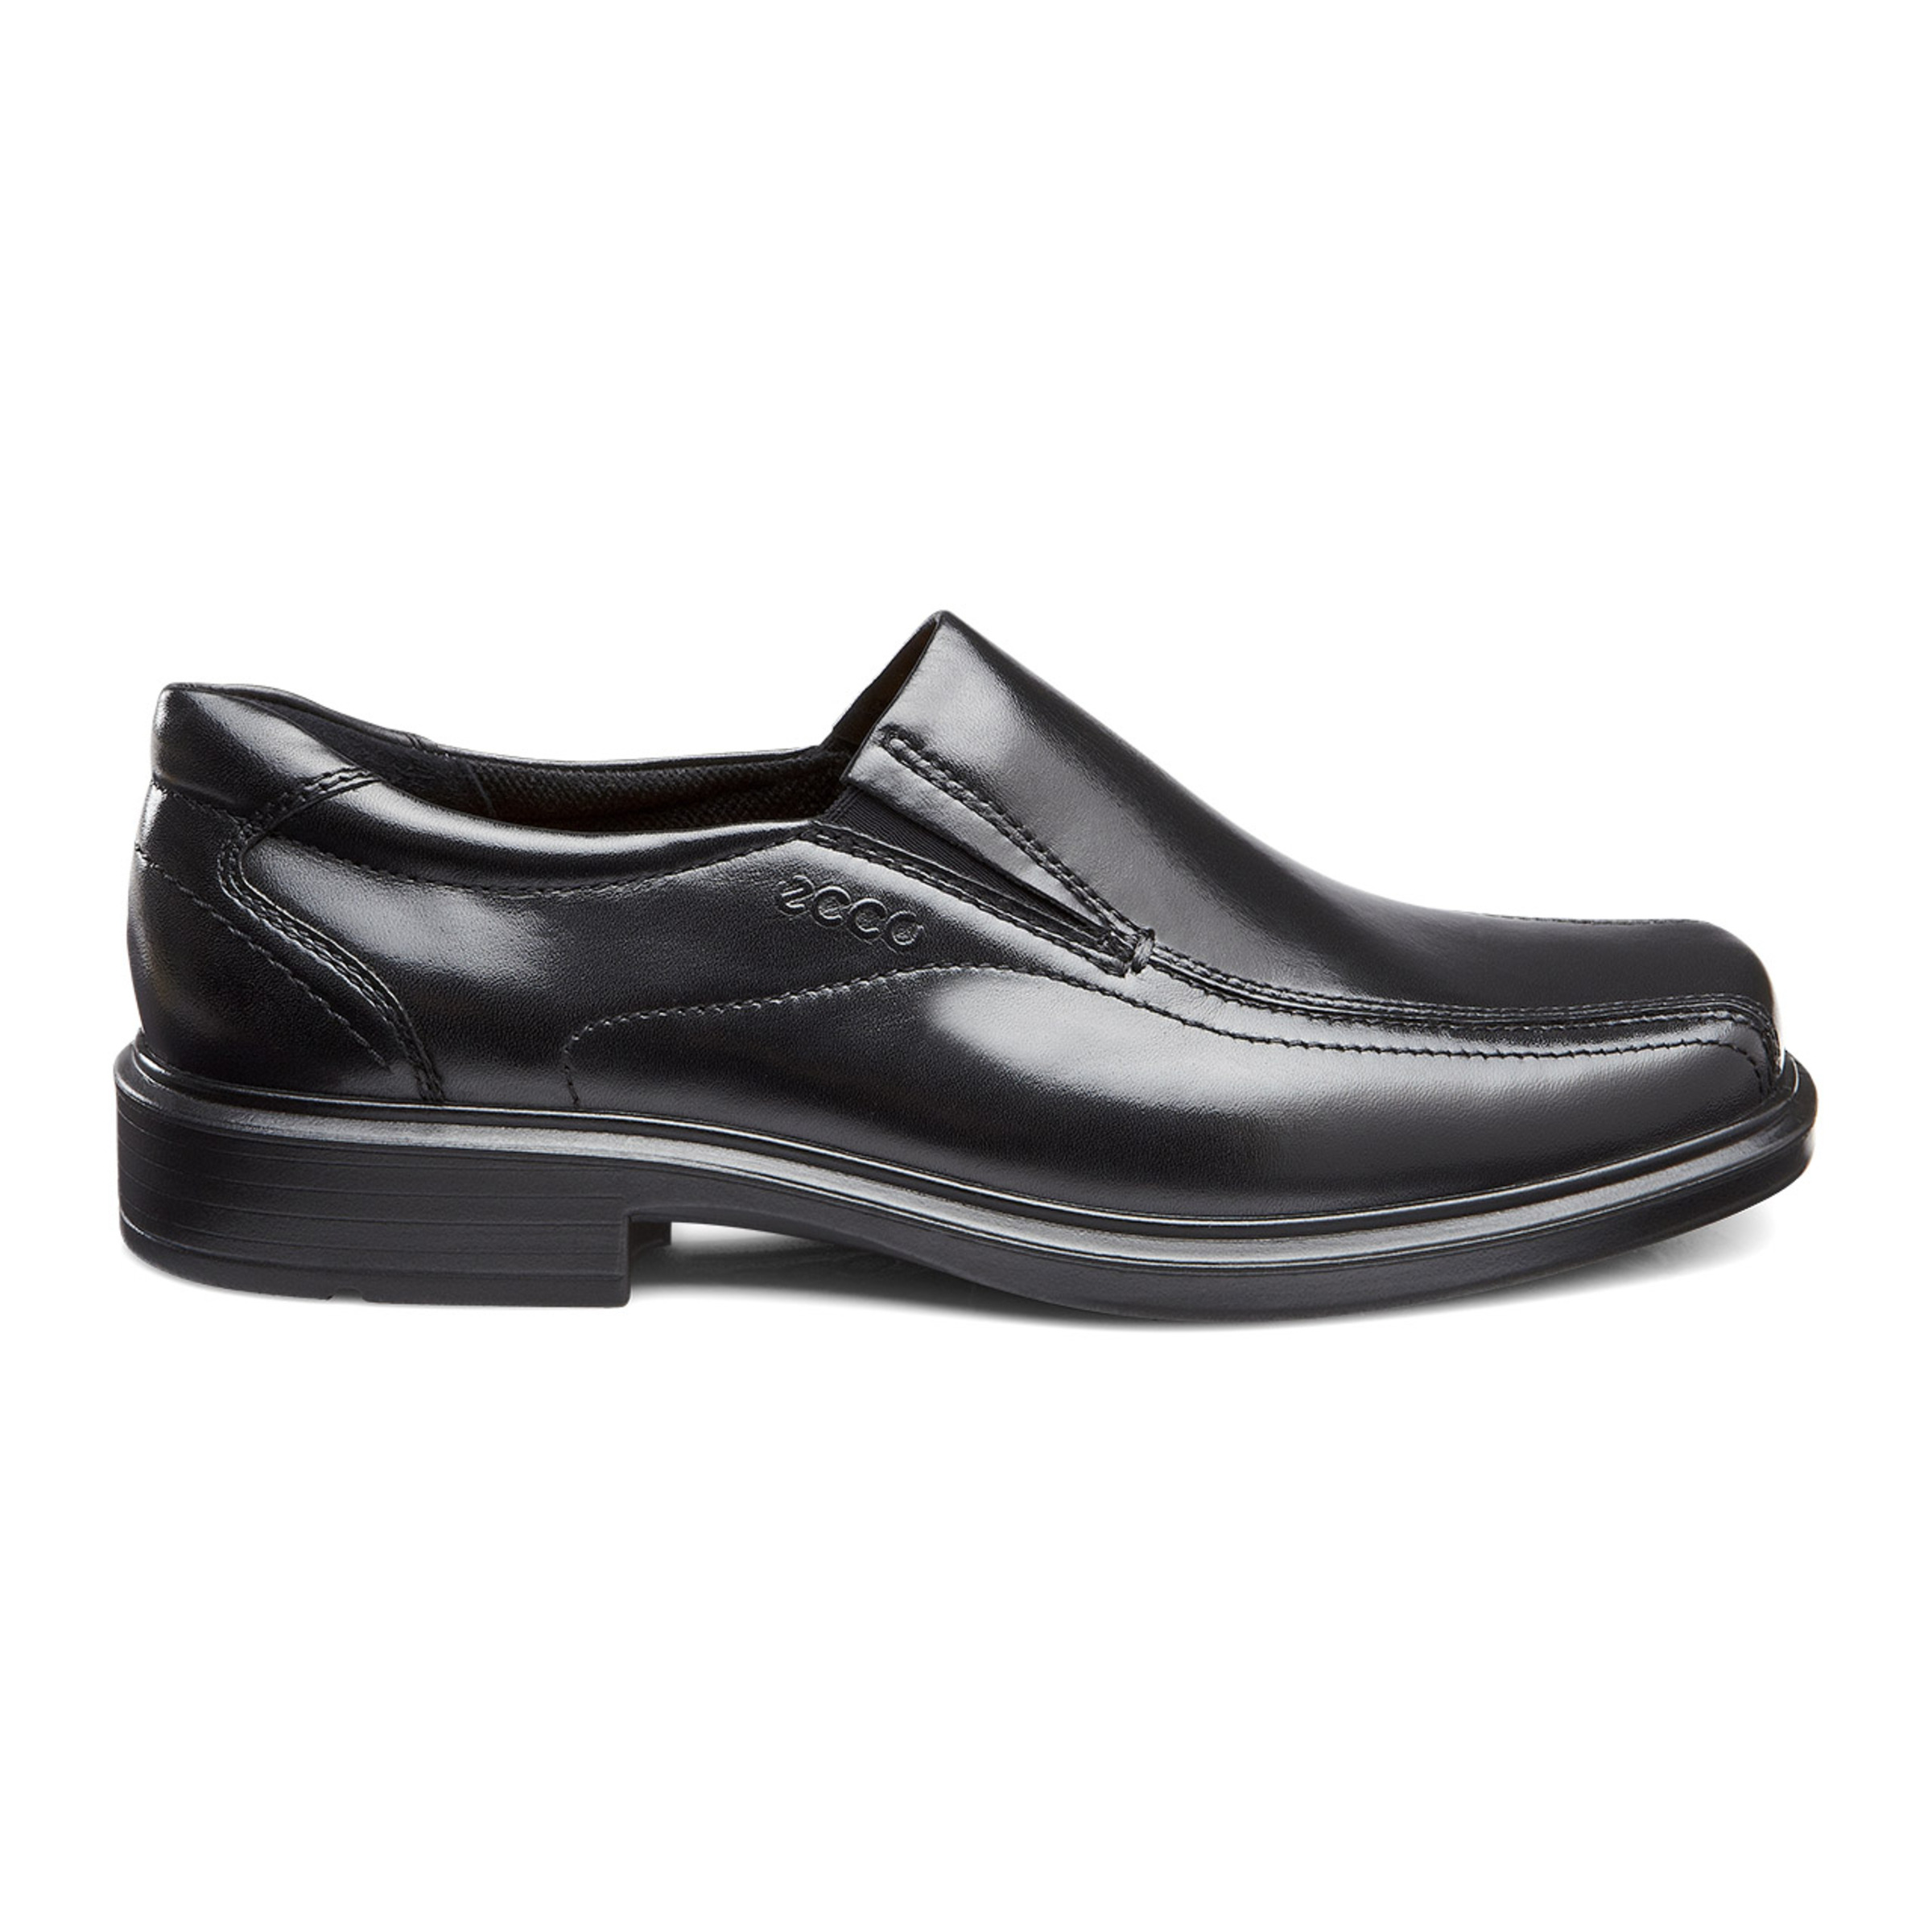 Image of ECCO Helsinki Bike Toe Slip On